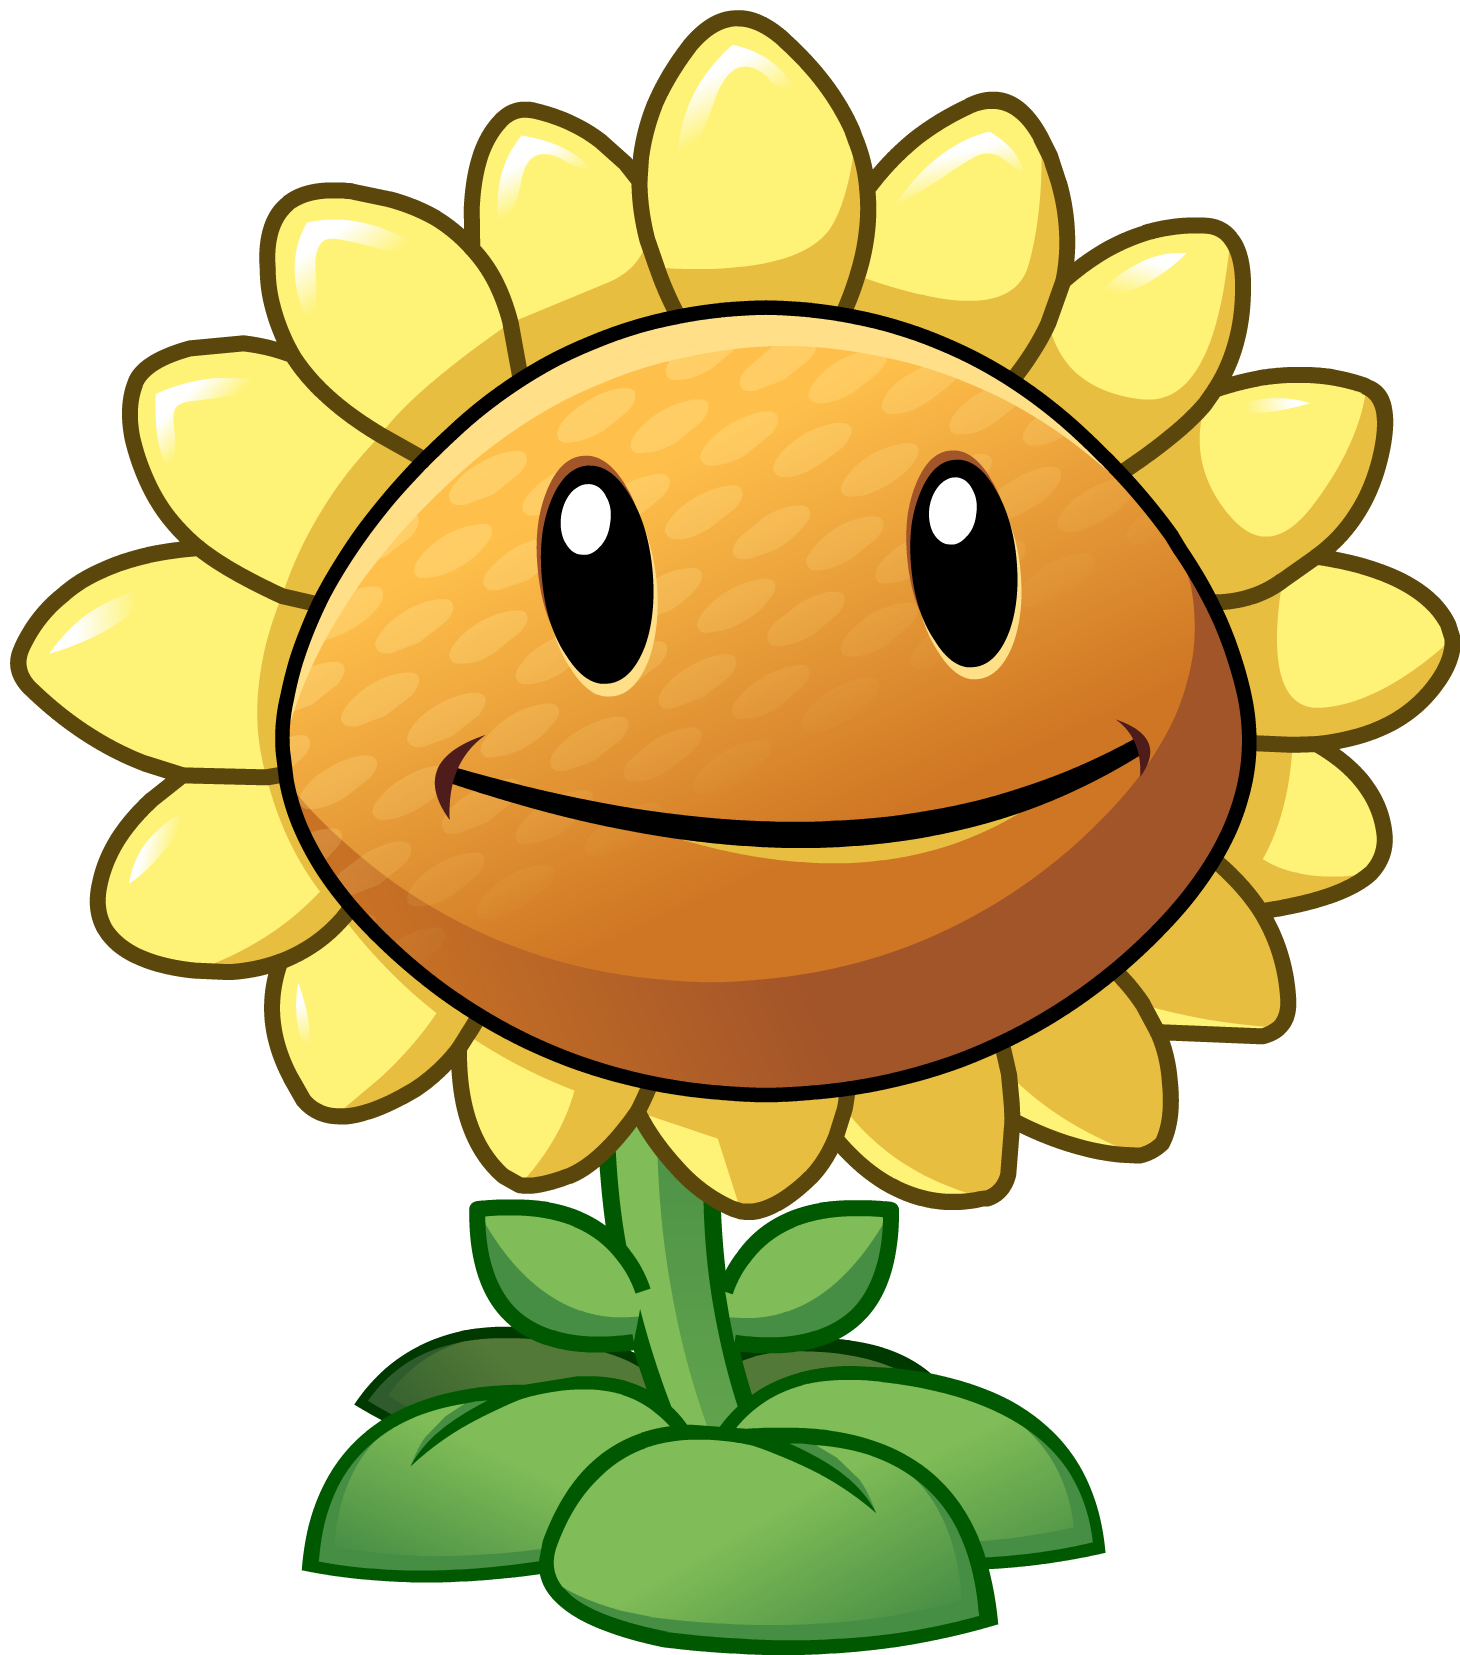 Plants vs zombies 2 sunflower by illustation16-d7gic8z.png - Plants V Zombies HD PNG